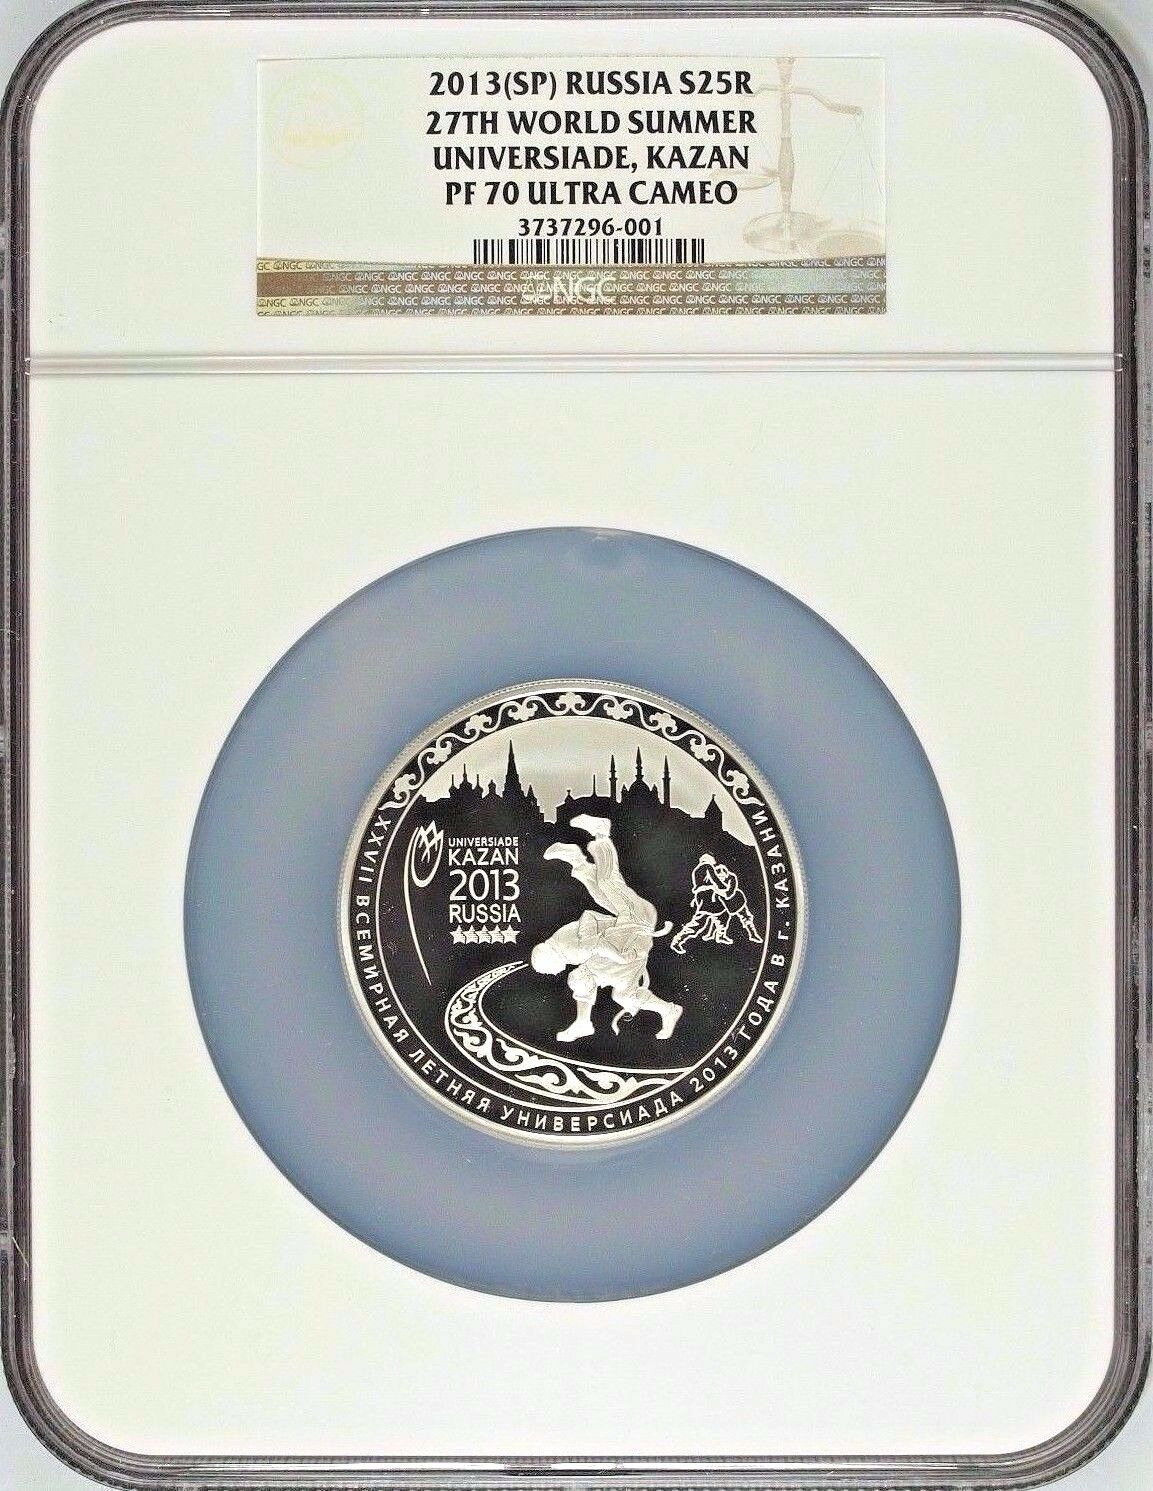 2013 Russia 5 oz Silver 25 Roubles 27th World Summer Universiade Kazan NGC PF70